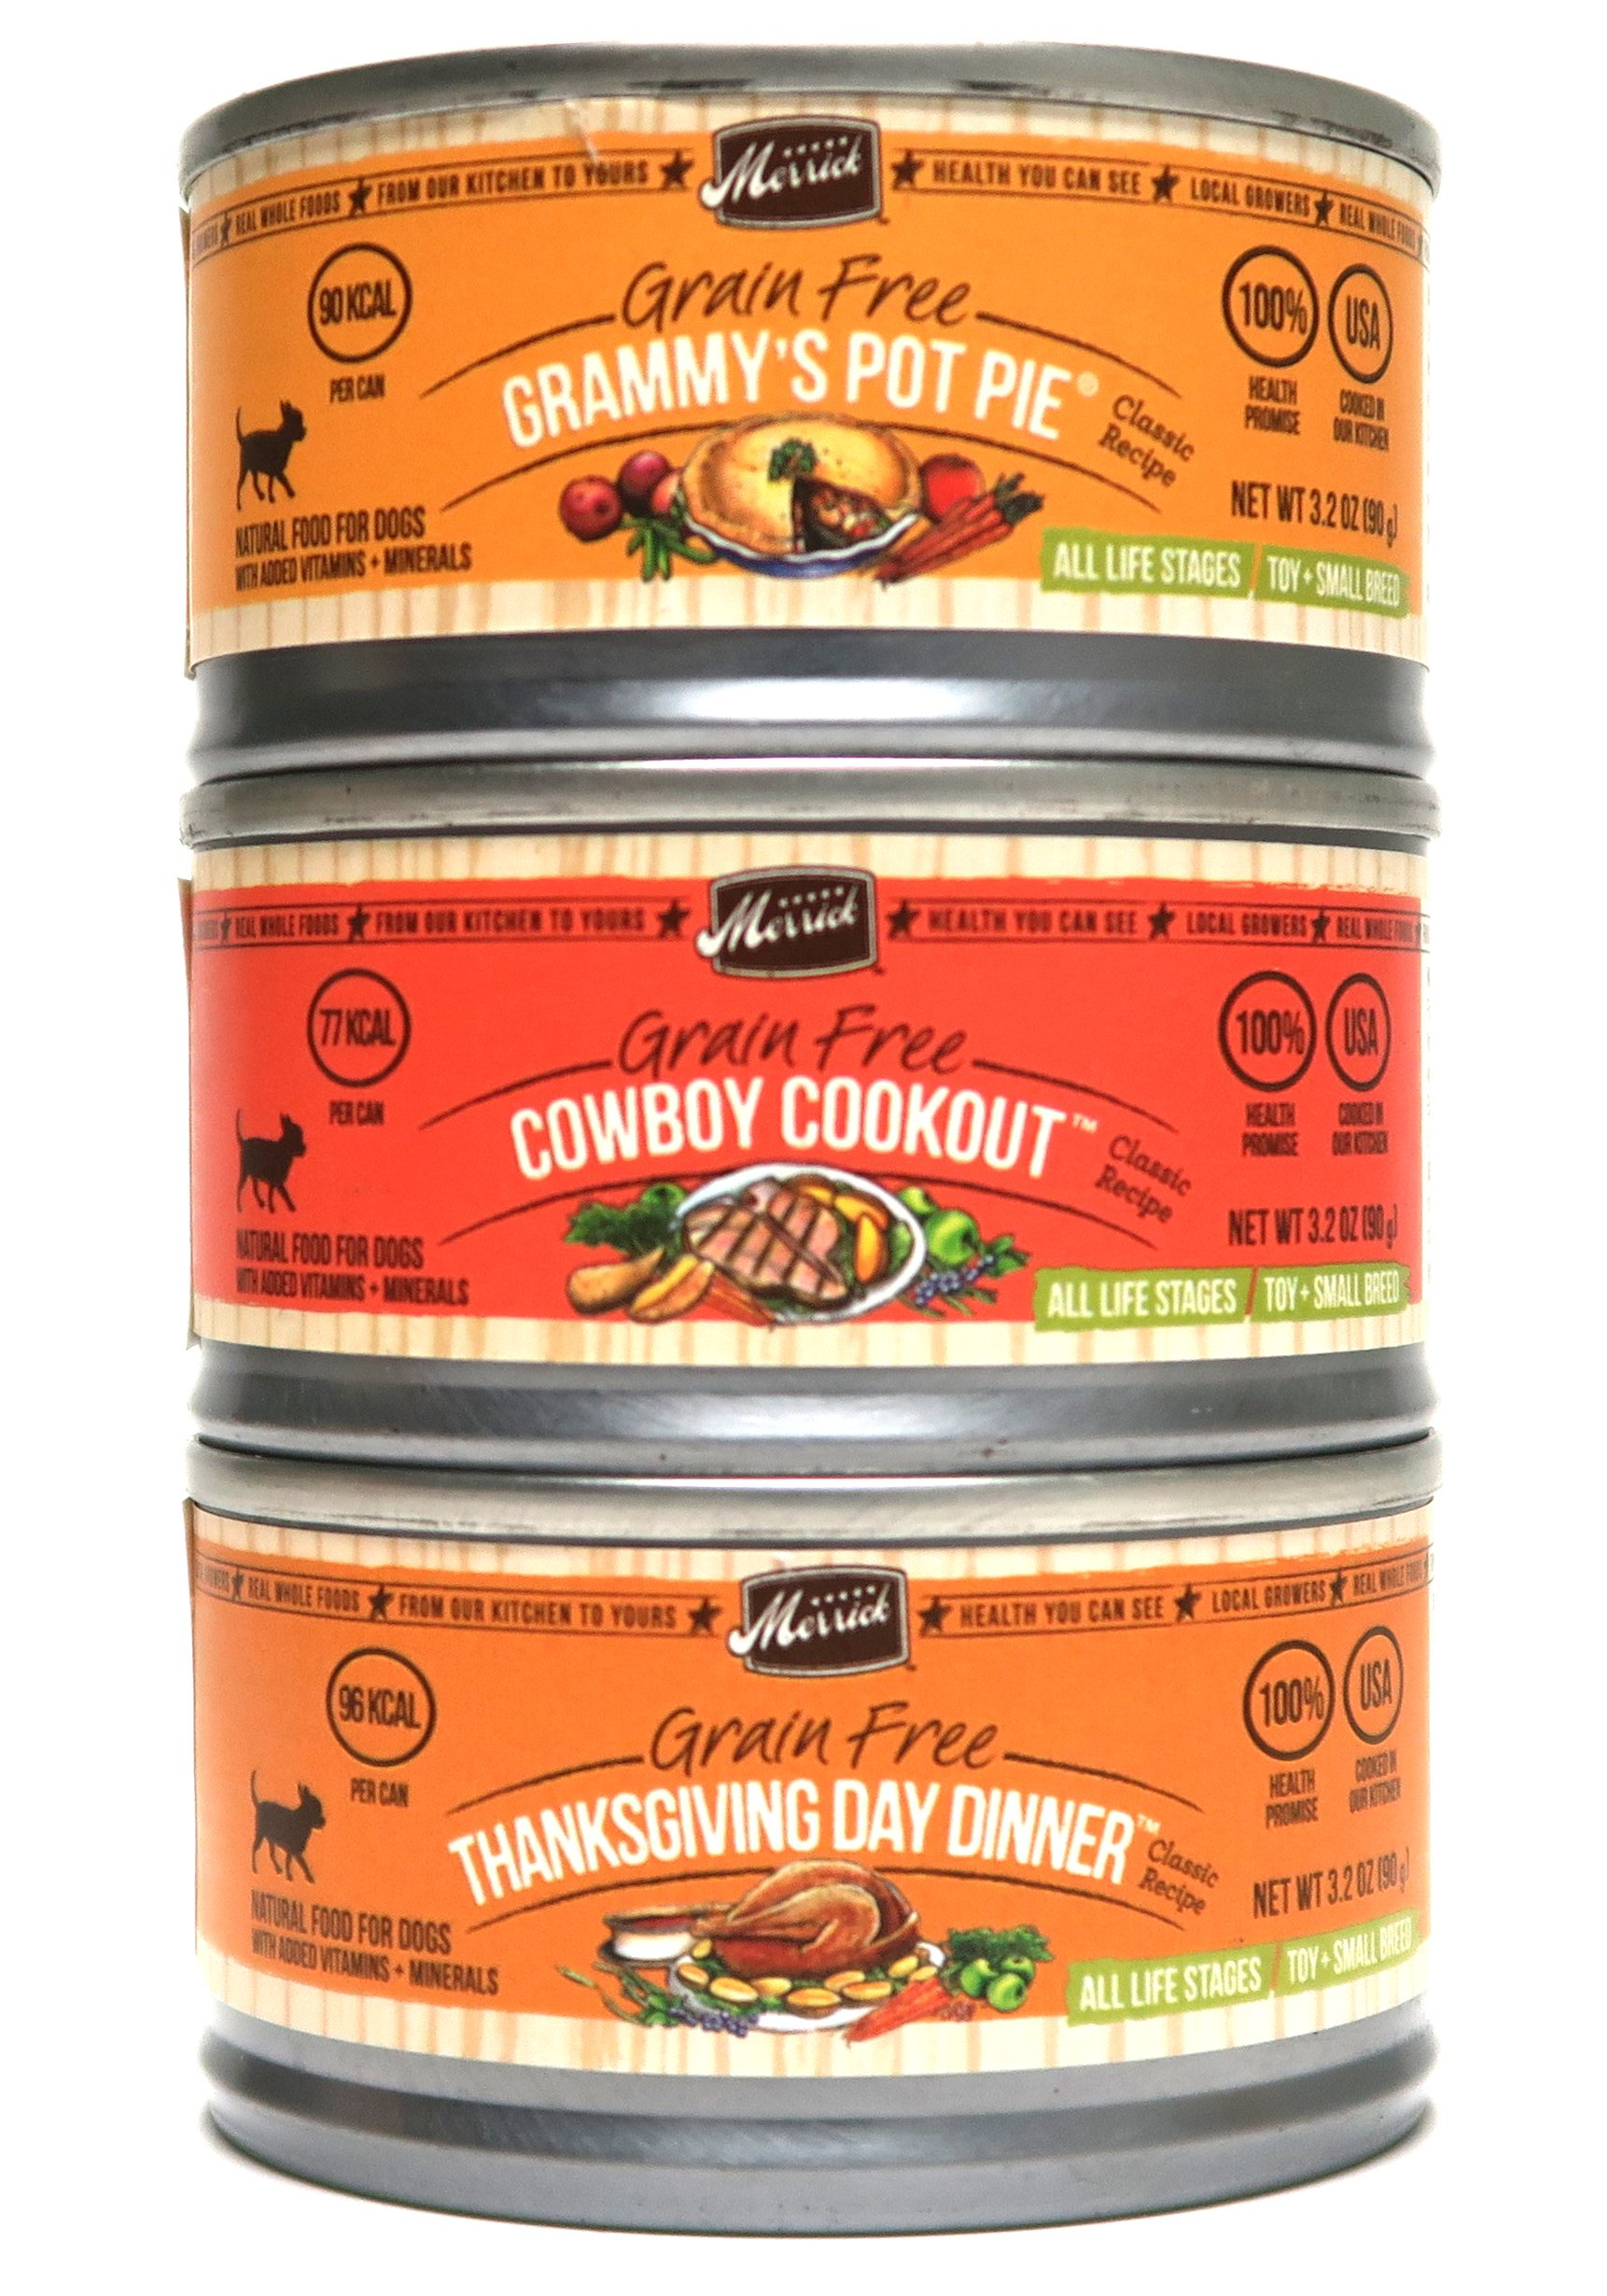 Merrick Grain Free Canned Dog Food Variety Bundle - 3 Flavors (Thanksgiving Day Dinner, Grammy's Pot Pie, and Cowboy Cookout) - 3 Ounces Each (12 Total Cans - 4 of Each Flavor)